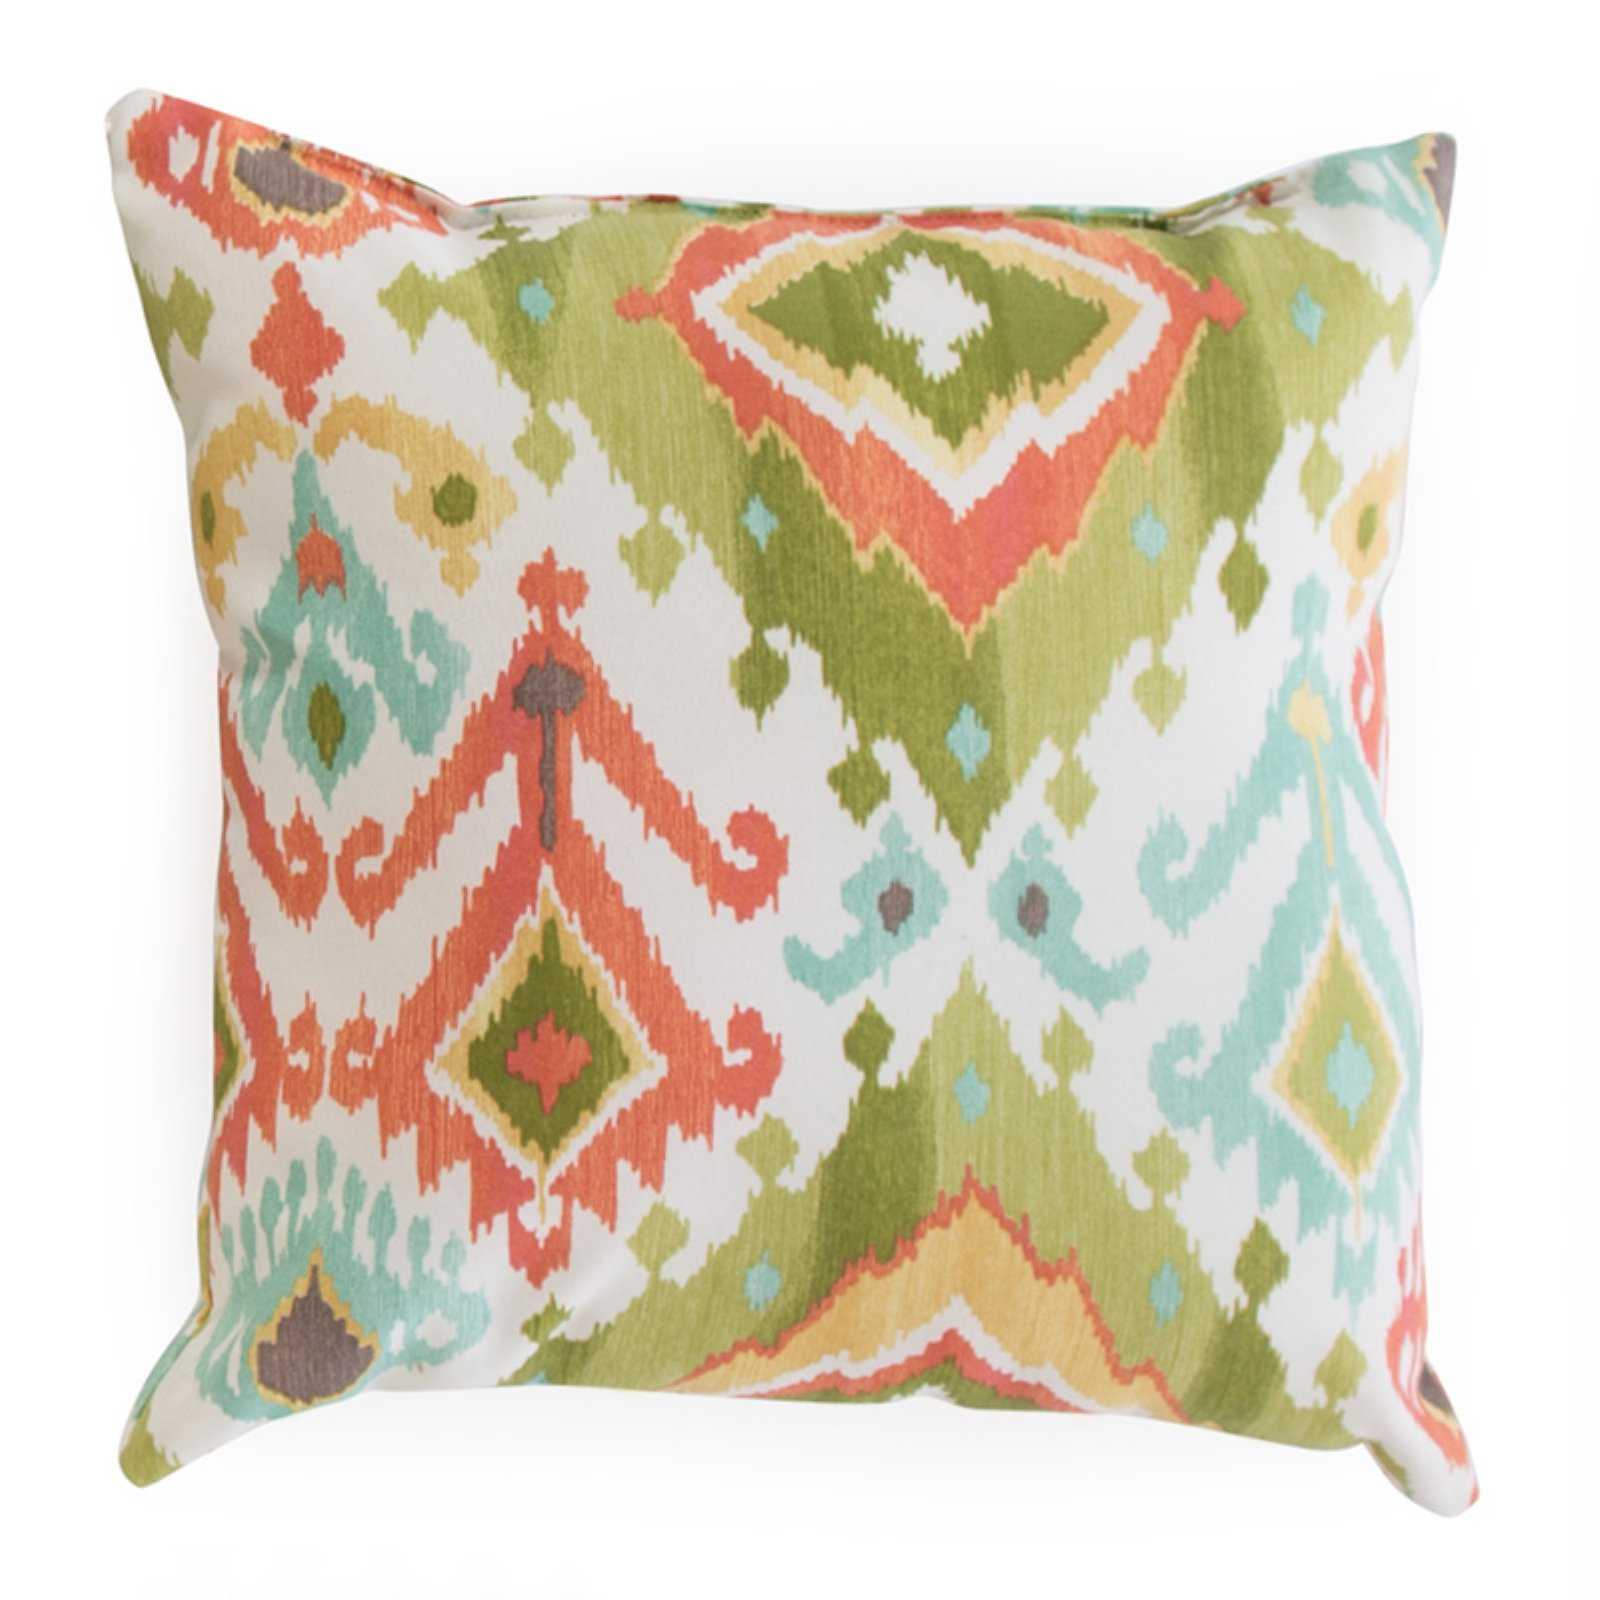 Outdoor Pillows Set Of 2.Coral Coast Tuscany 16 In Square Outdoor Pillows Set Of 2